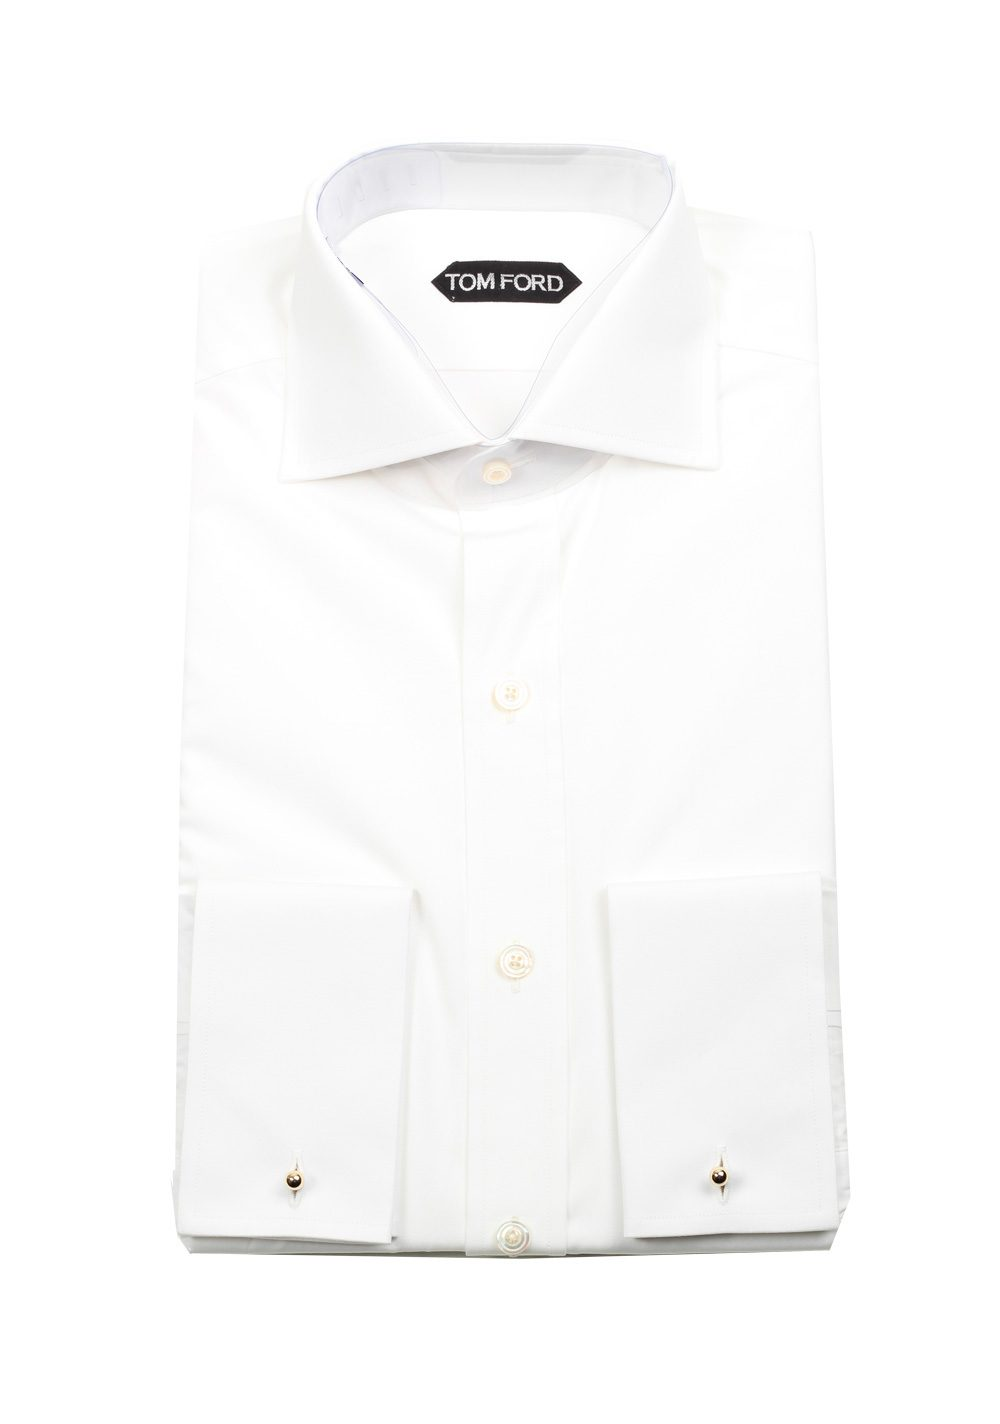 21d80af0170 TOM FORD Solid White Dress Shirt French Cuffs Size 44 / 17,5 U.S. Slim Fit  | Costume Limité